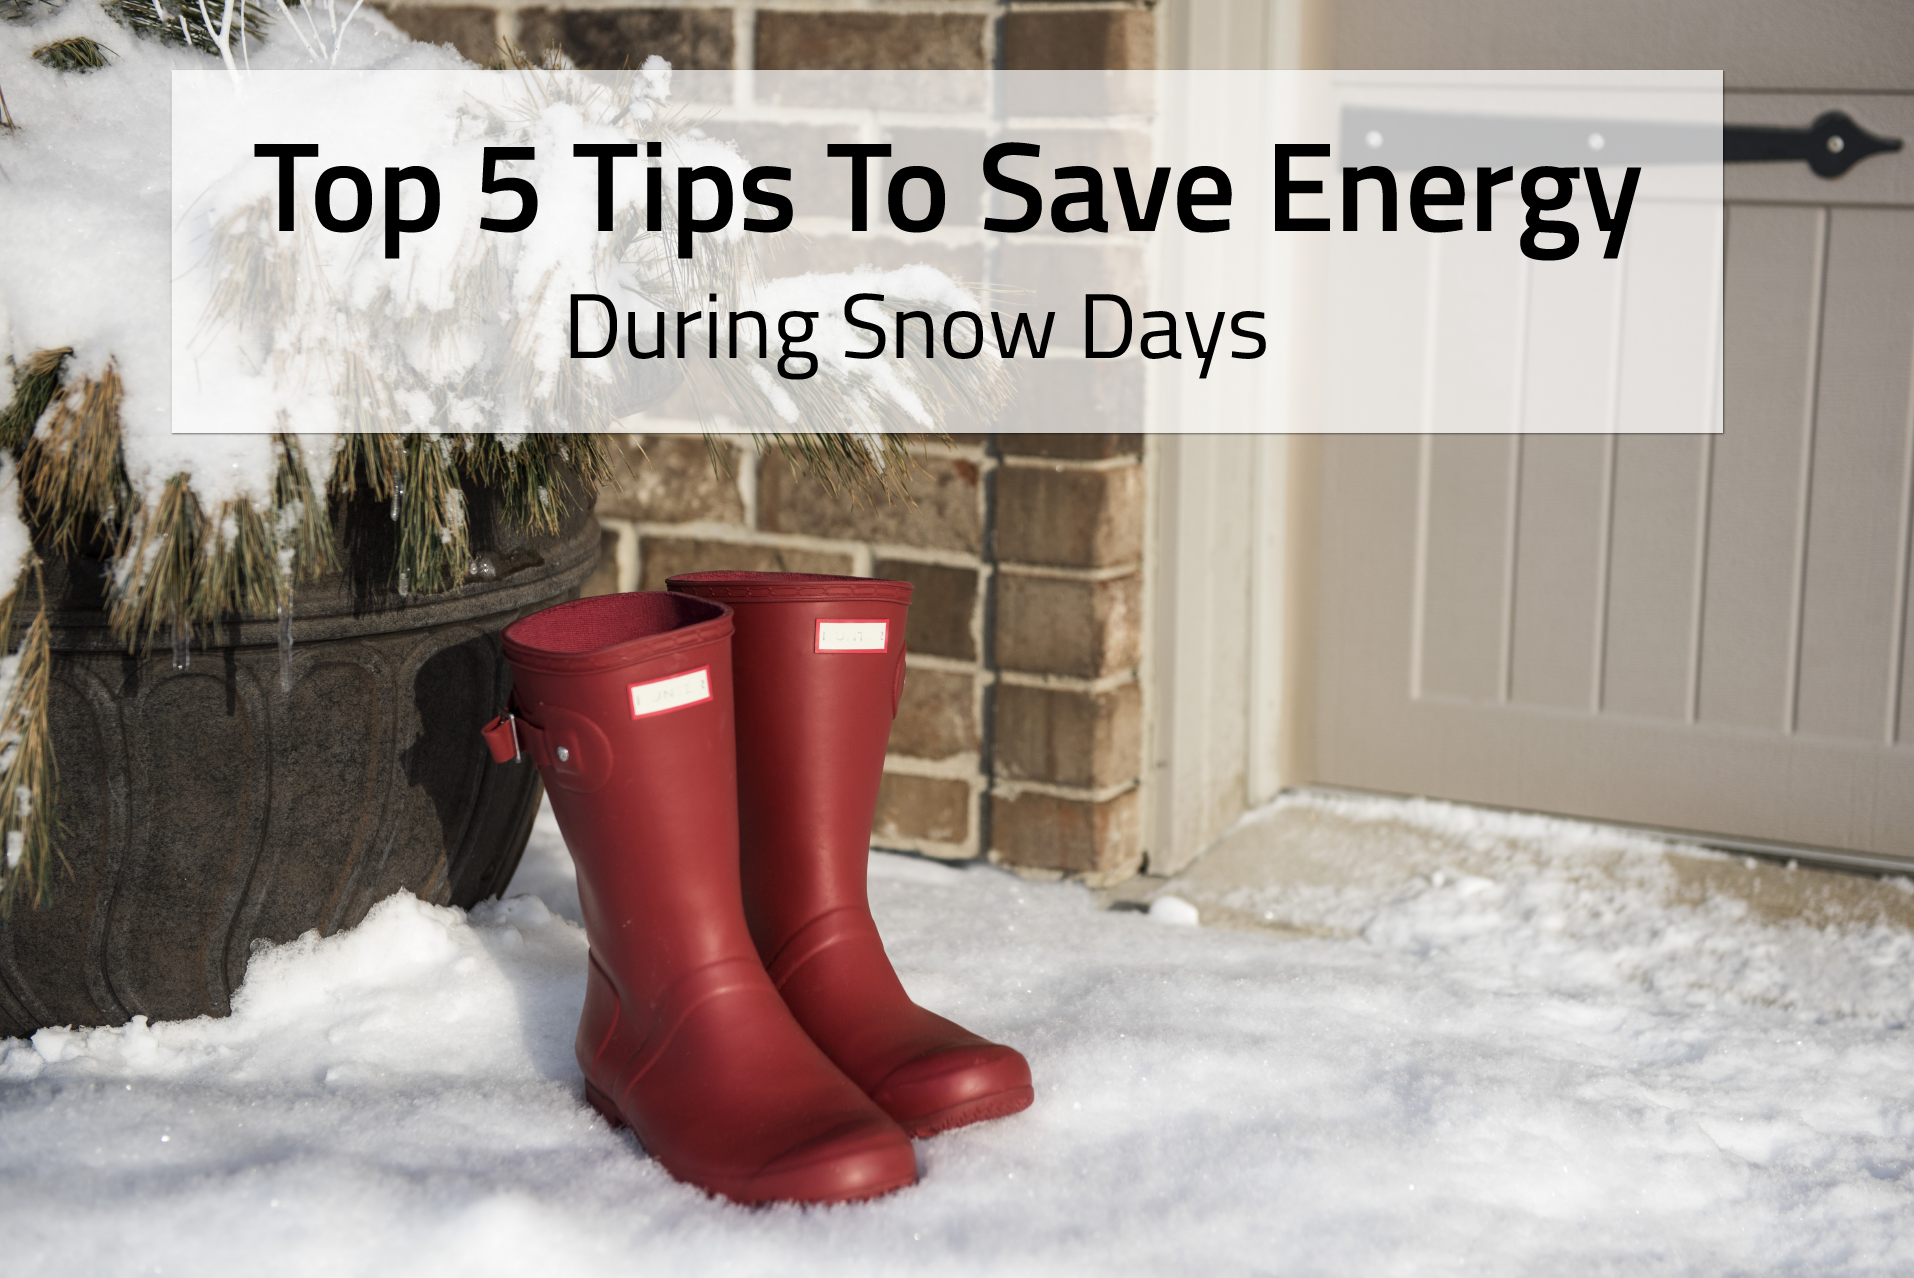 Save Energy During Snow Days - Nabuh Energy